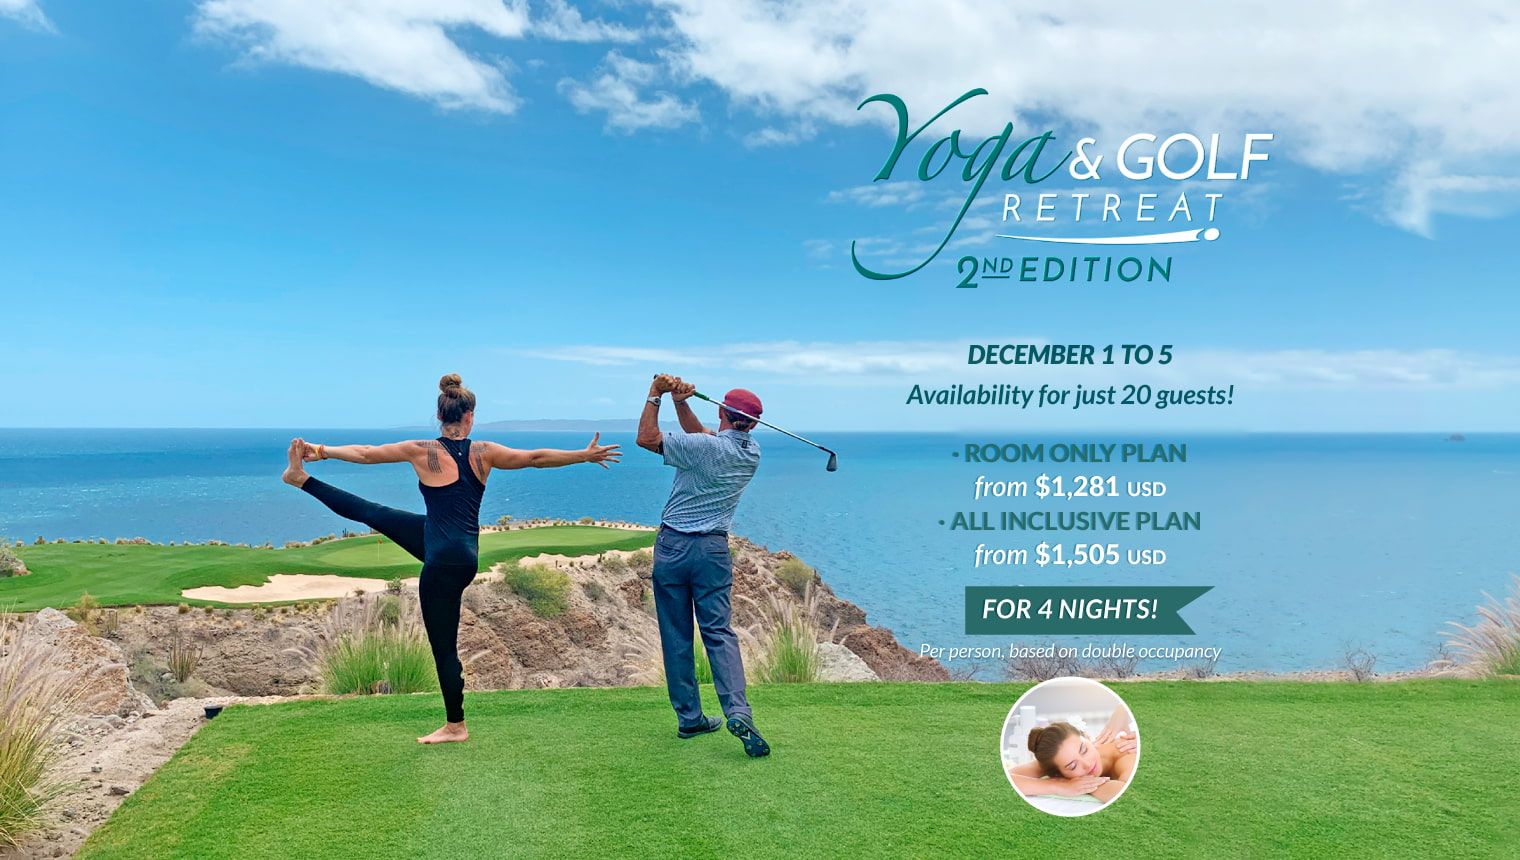 Yoga & Golf Retreat - Second Edition